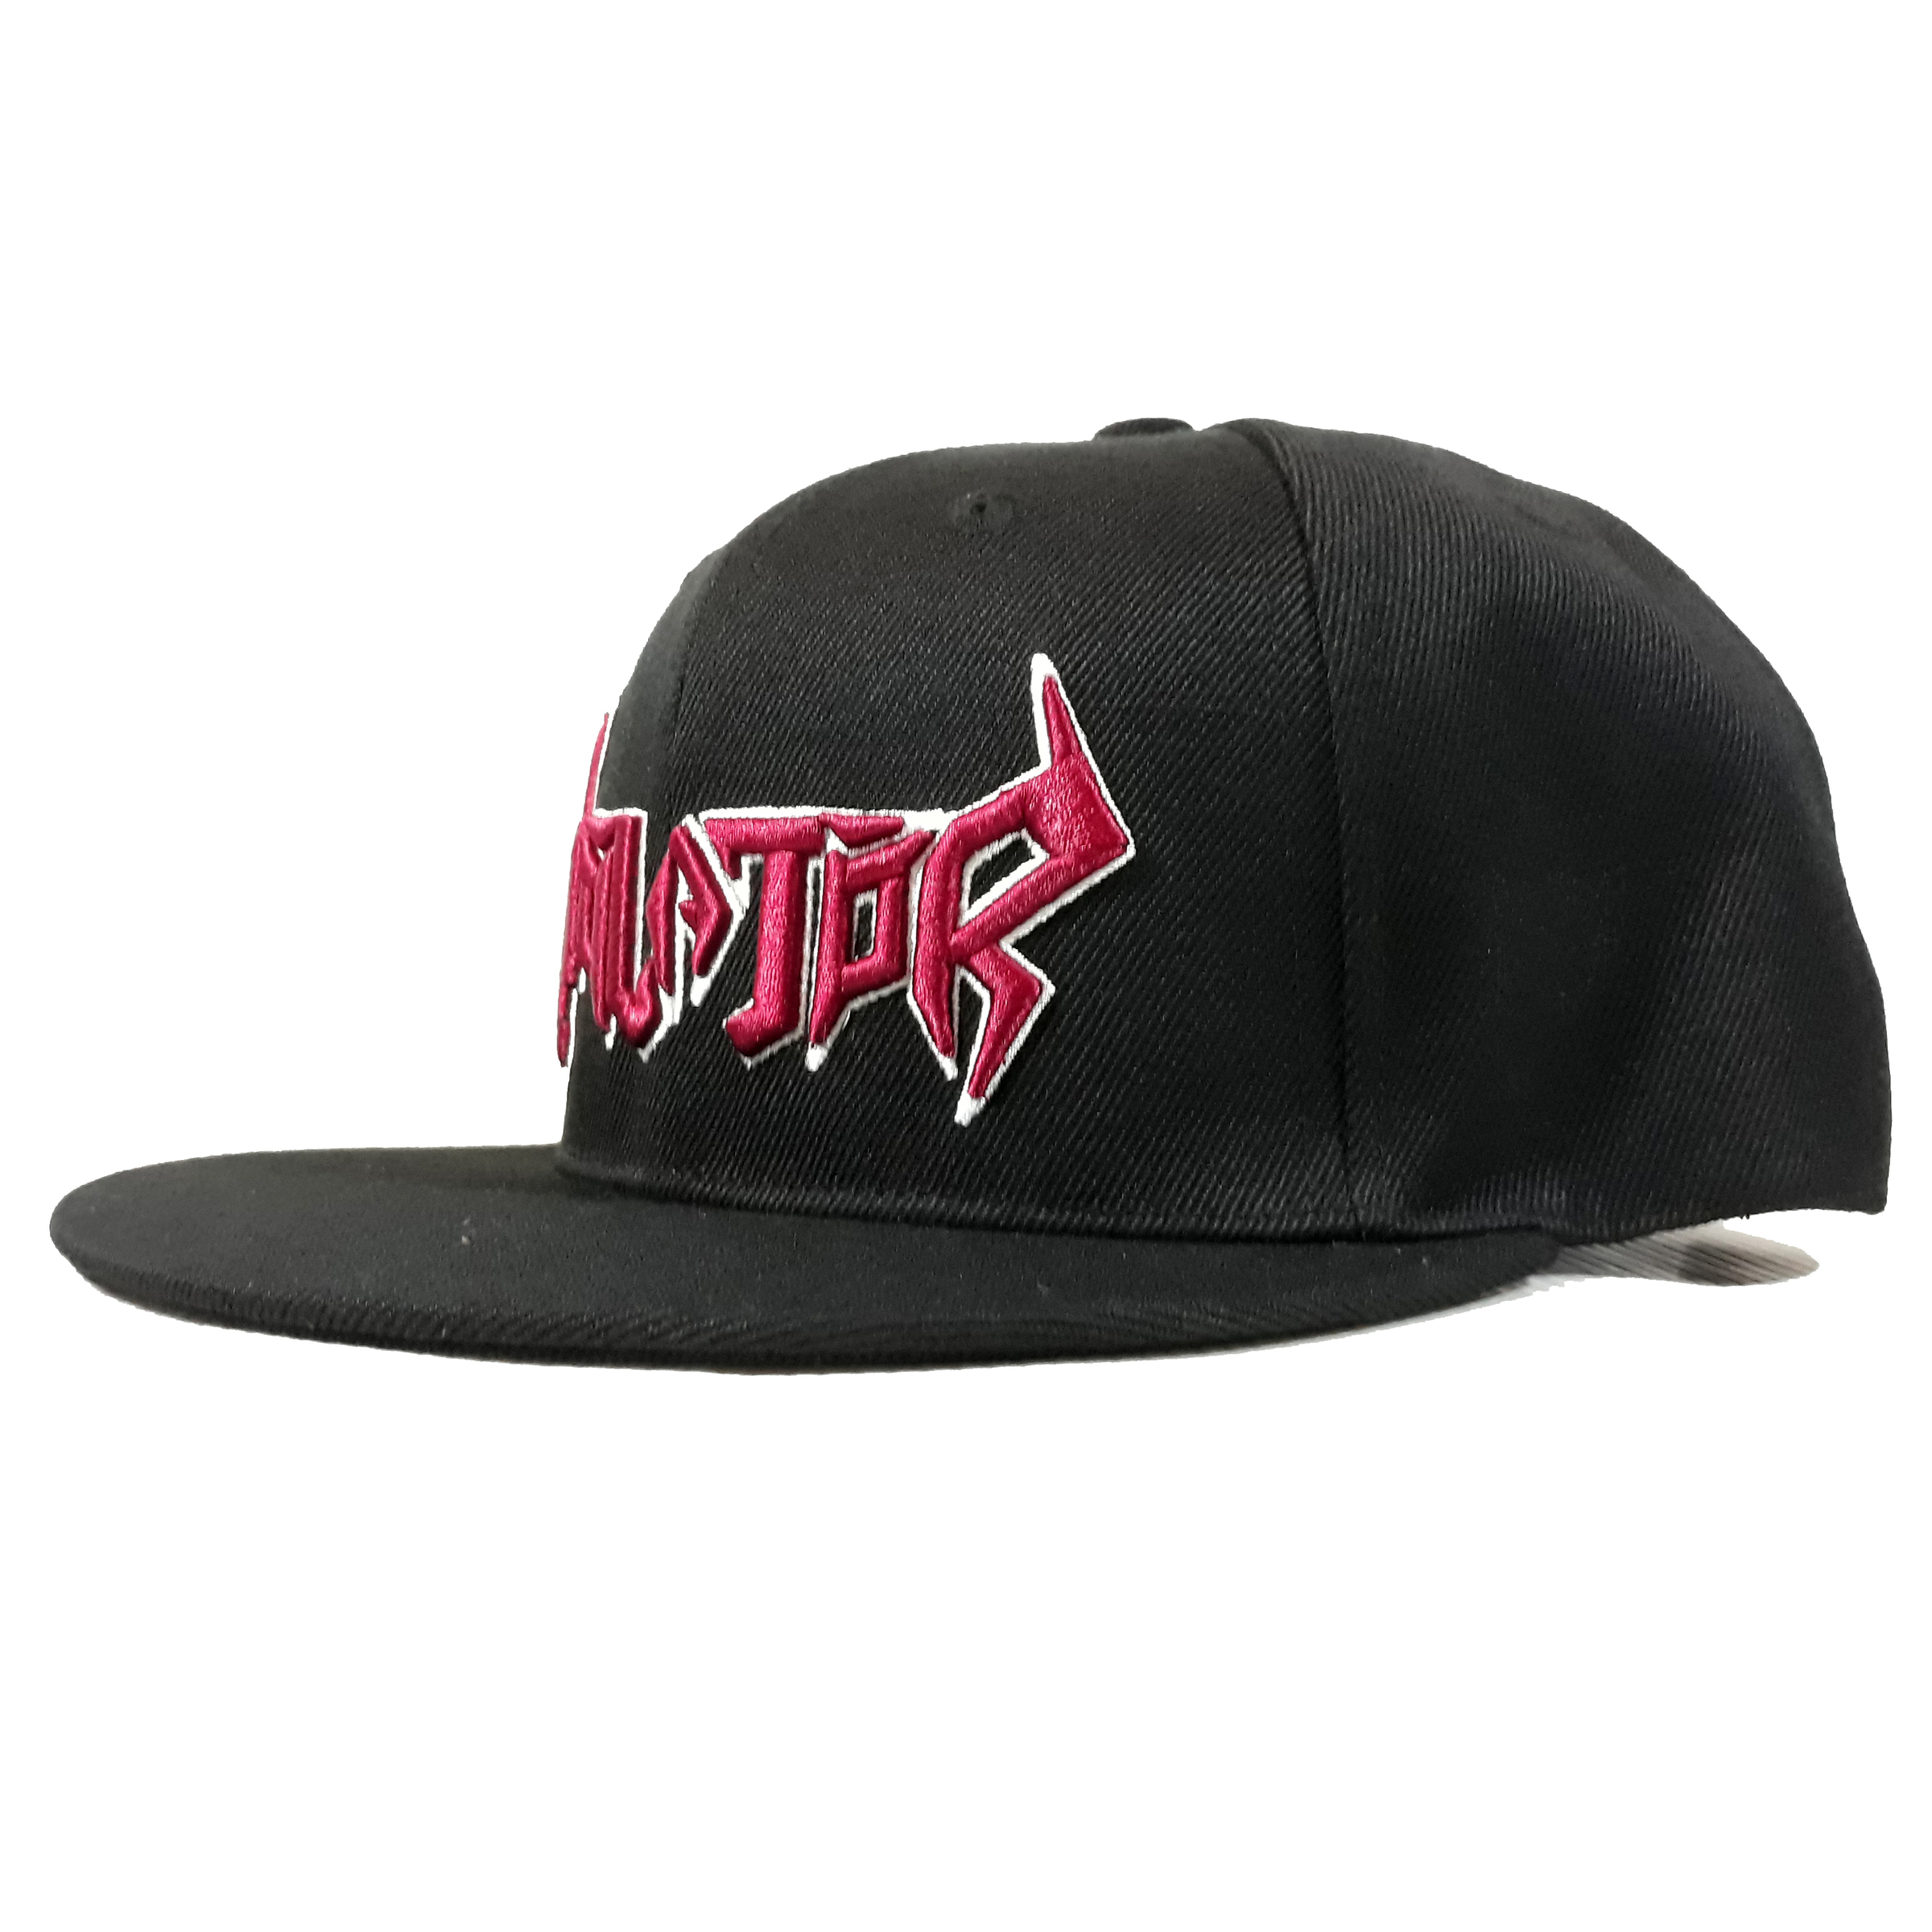 Violator-Chemical Assault snapback cap